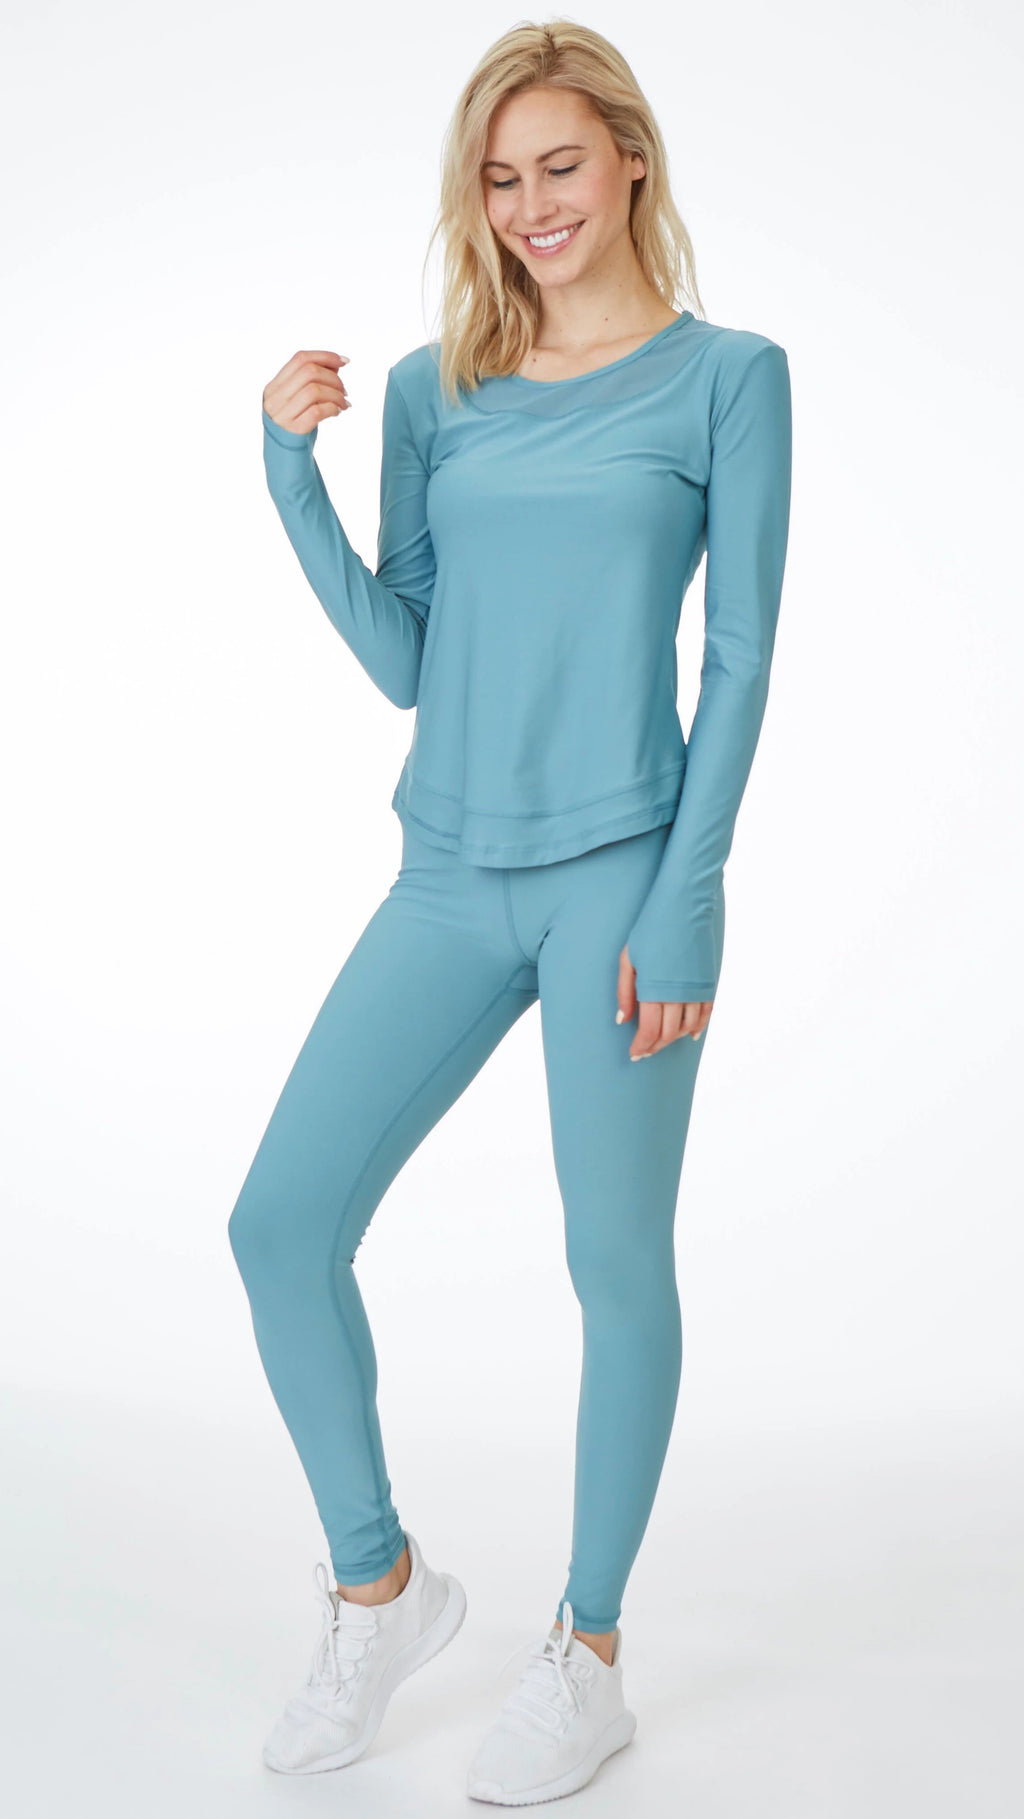 Gottex Studio Round Long Sleeve Top - Gottex Studio